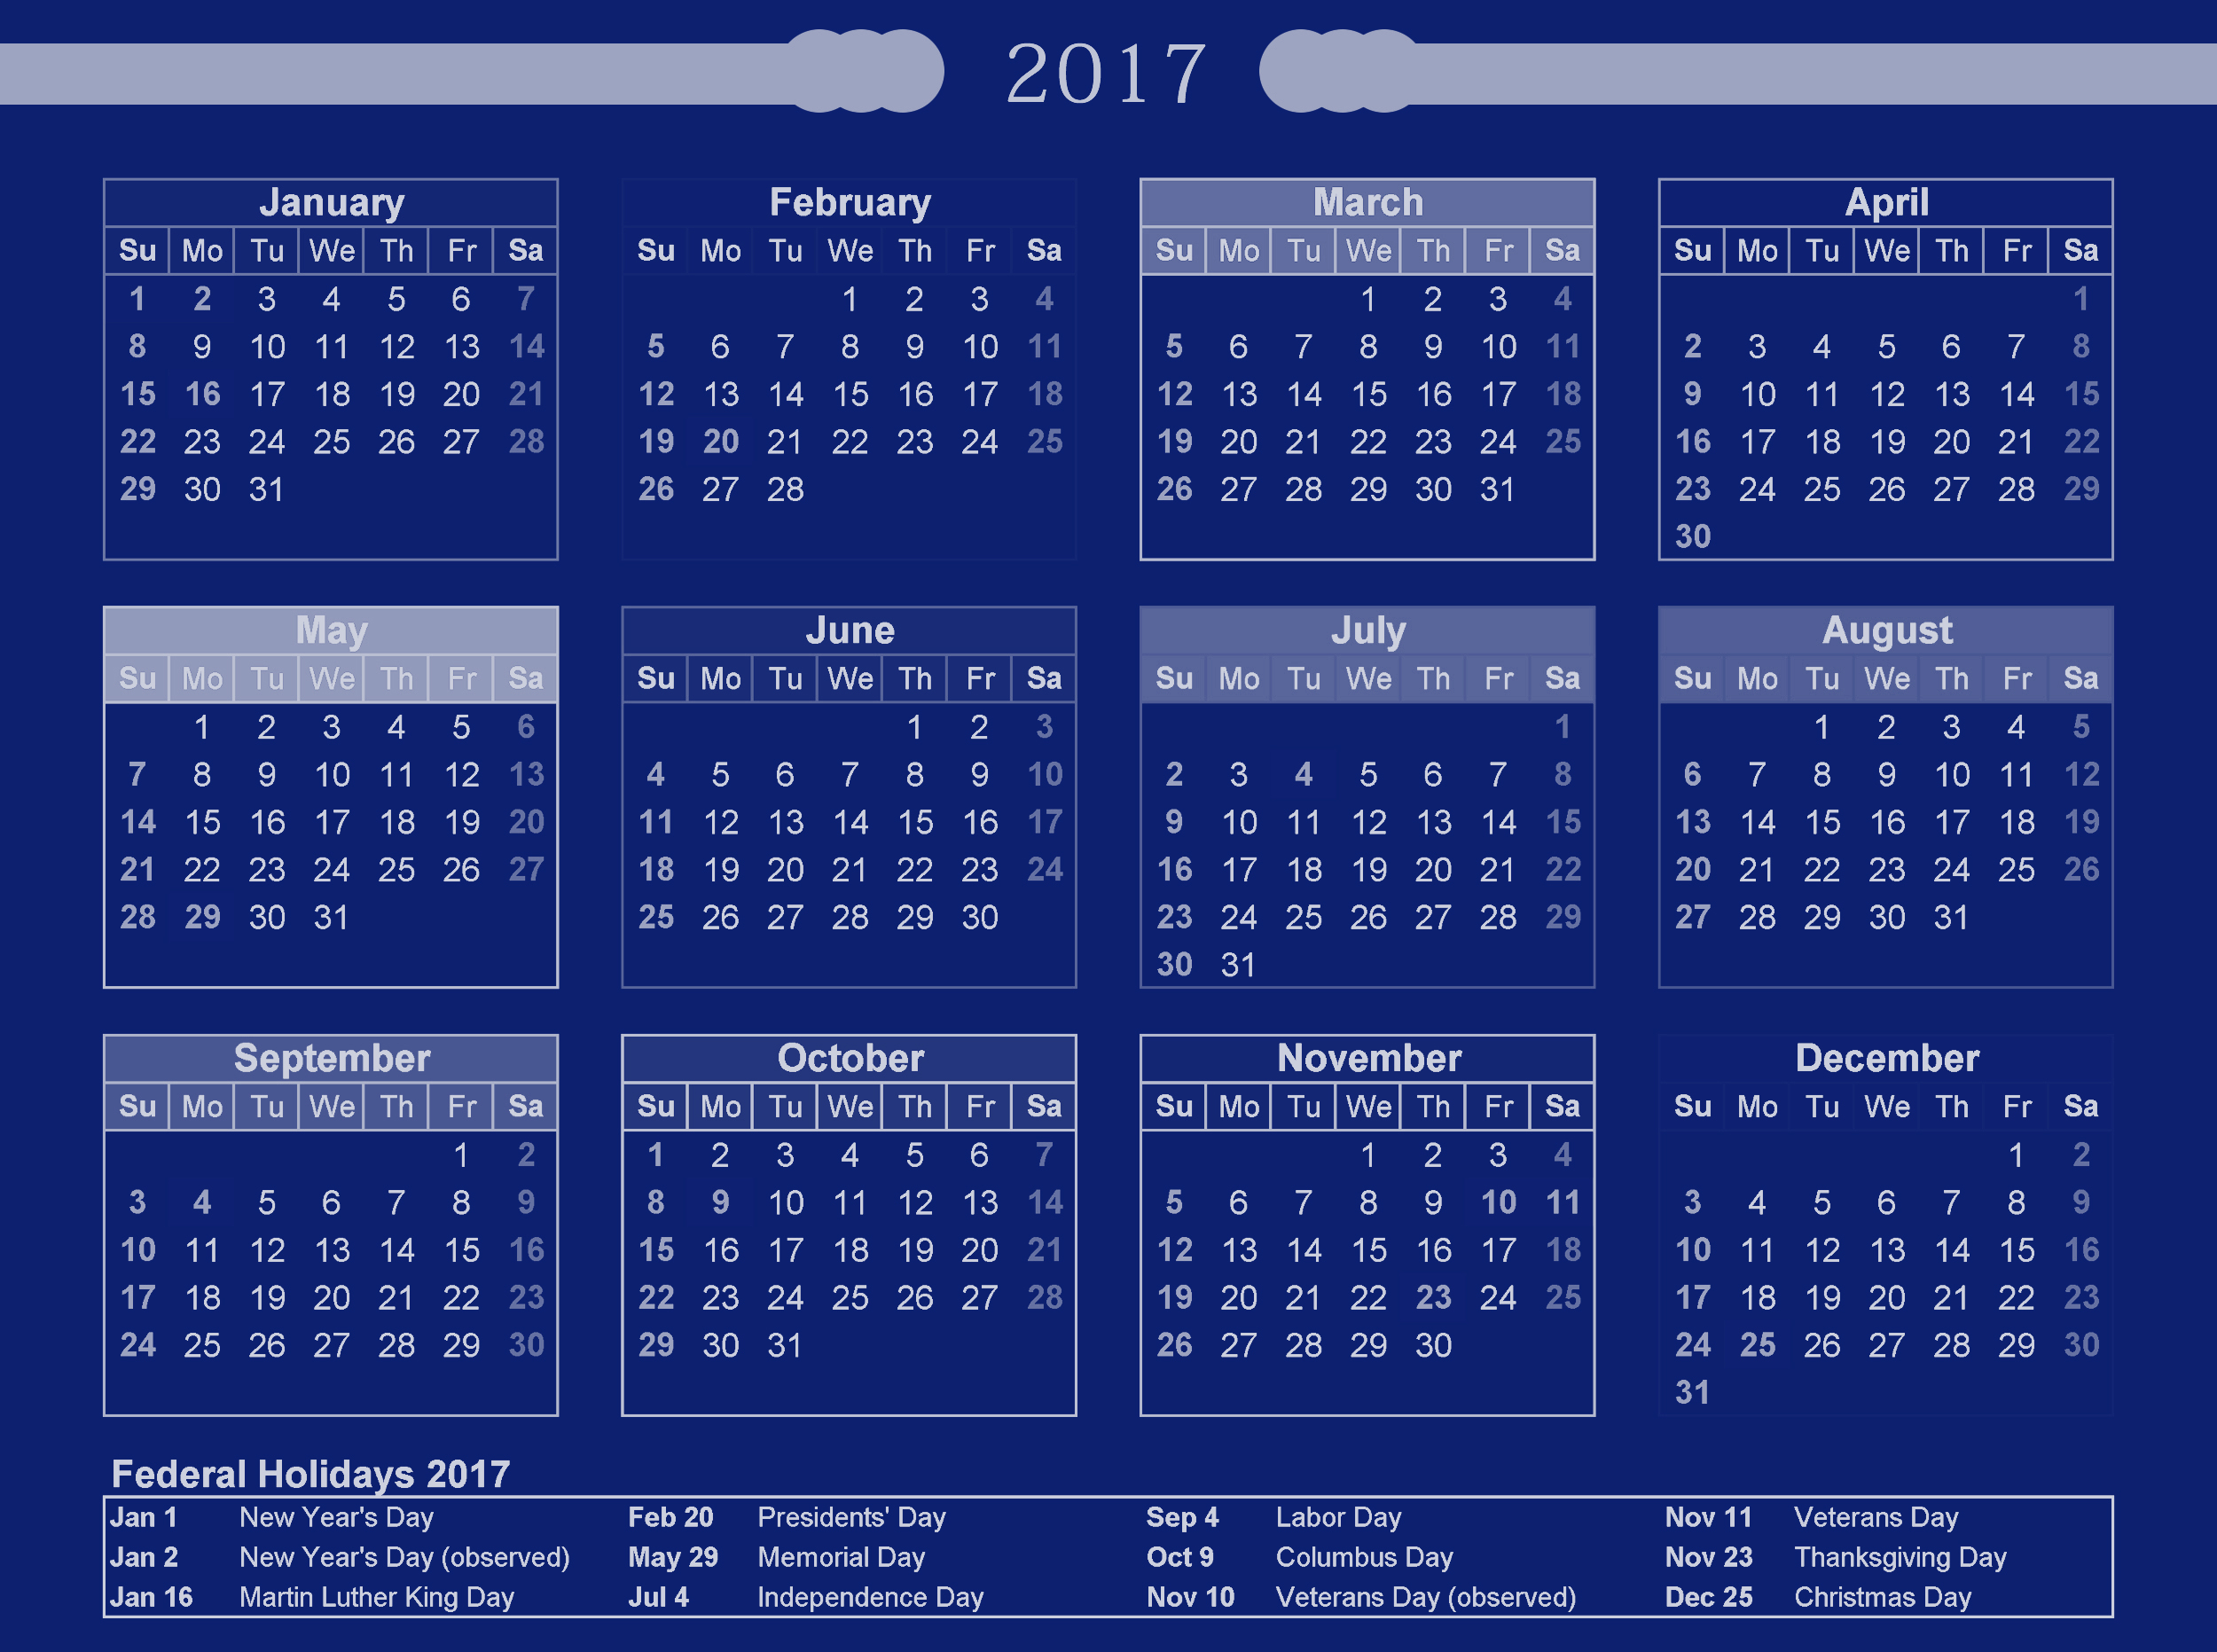 USA calendar 2017 with holiday list